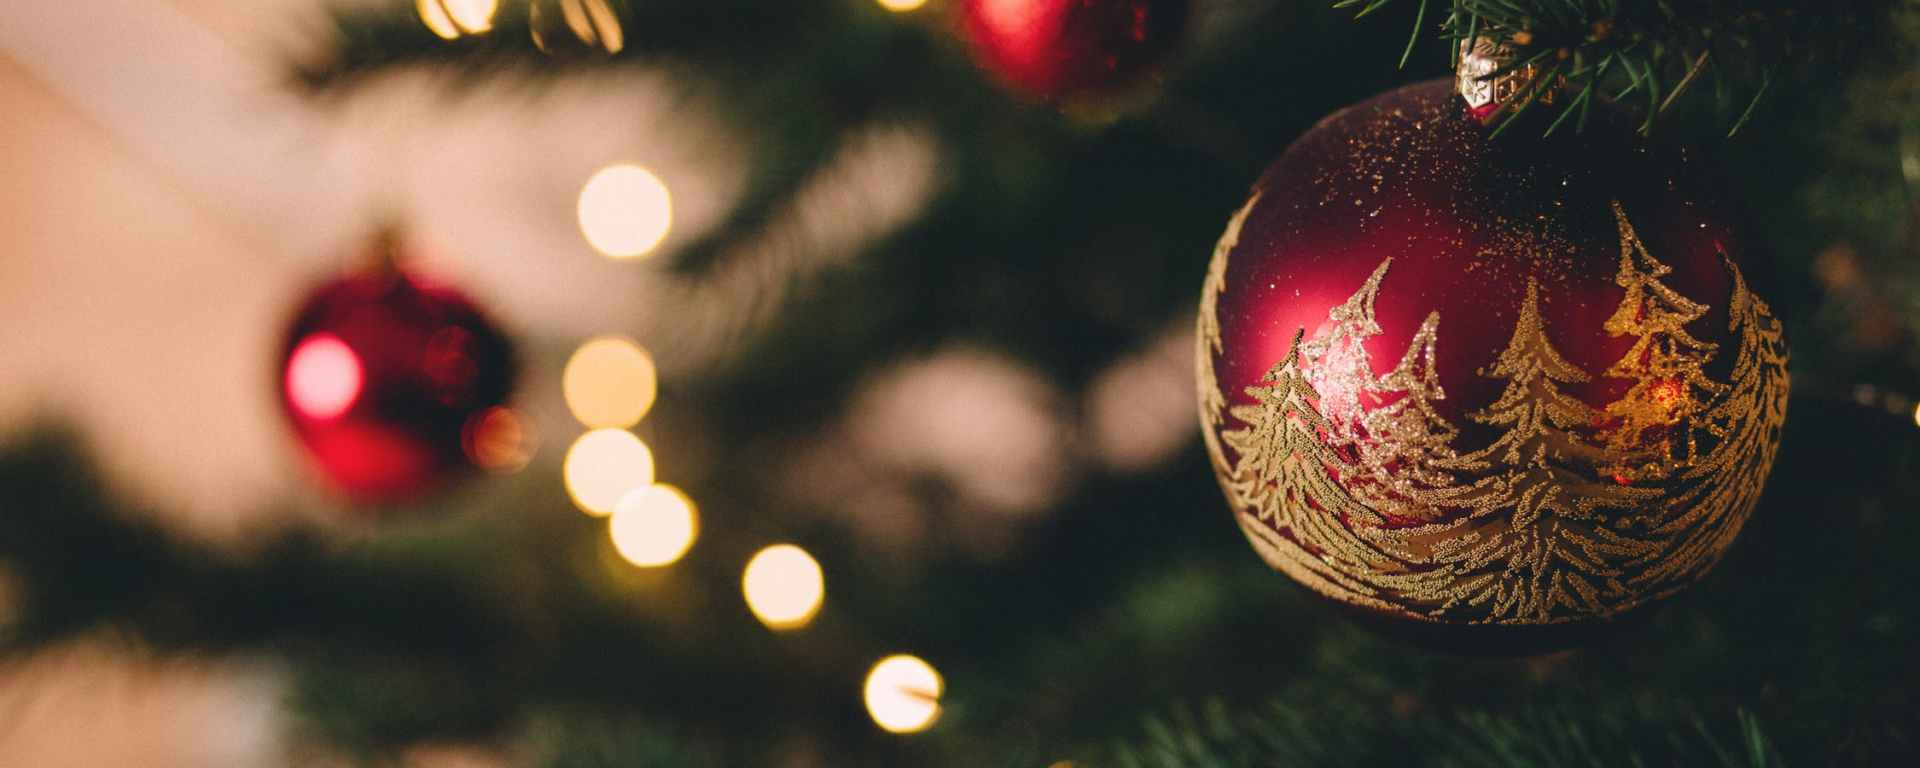 close up of red and gold ornament on Christmas tree branch